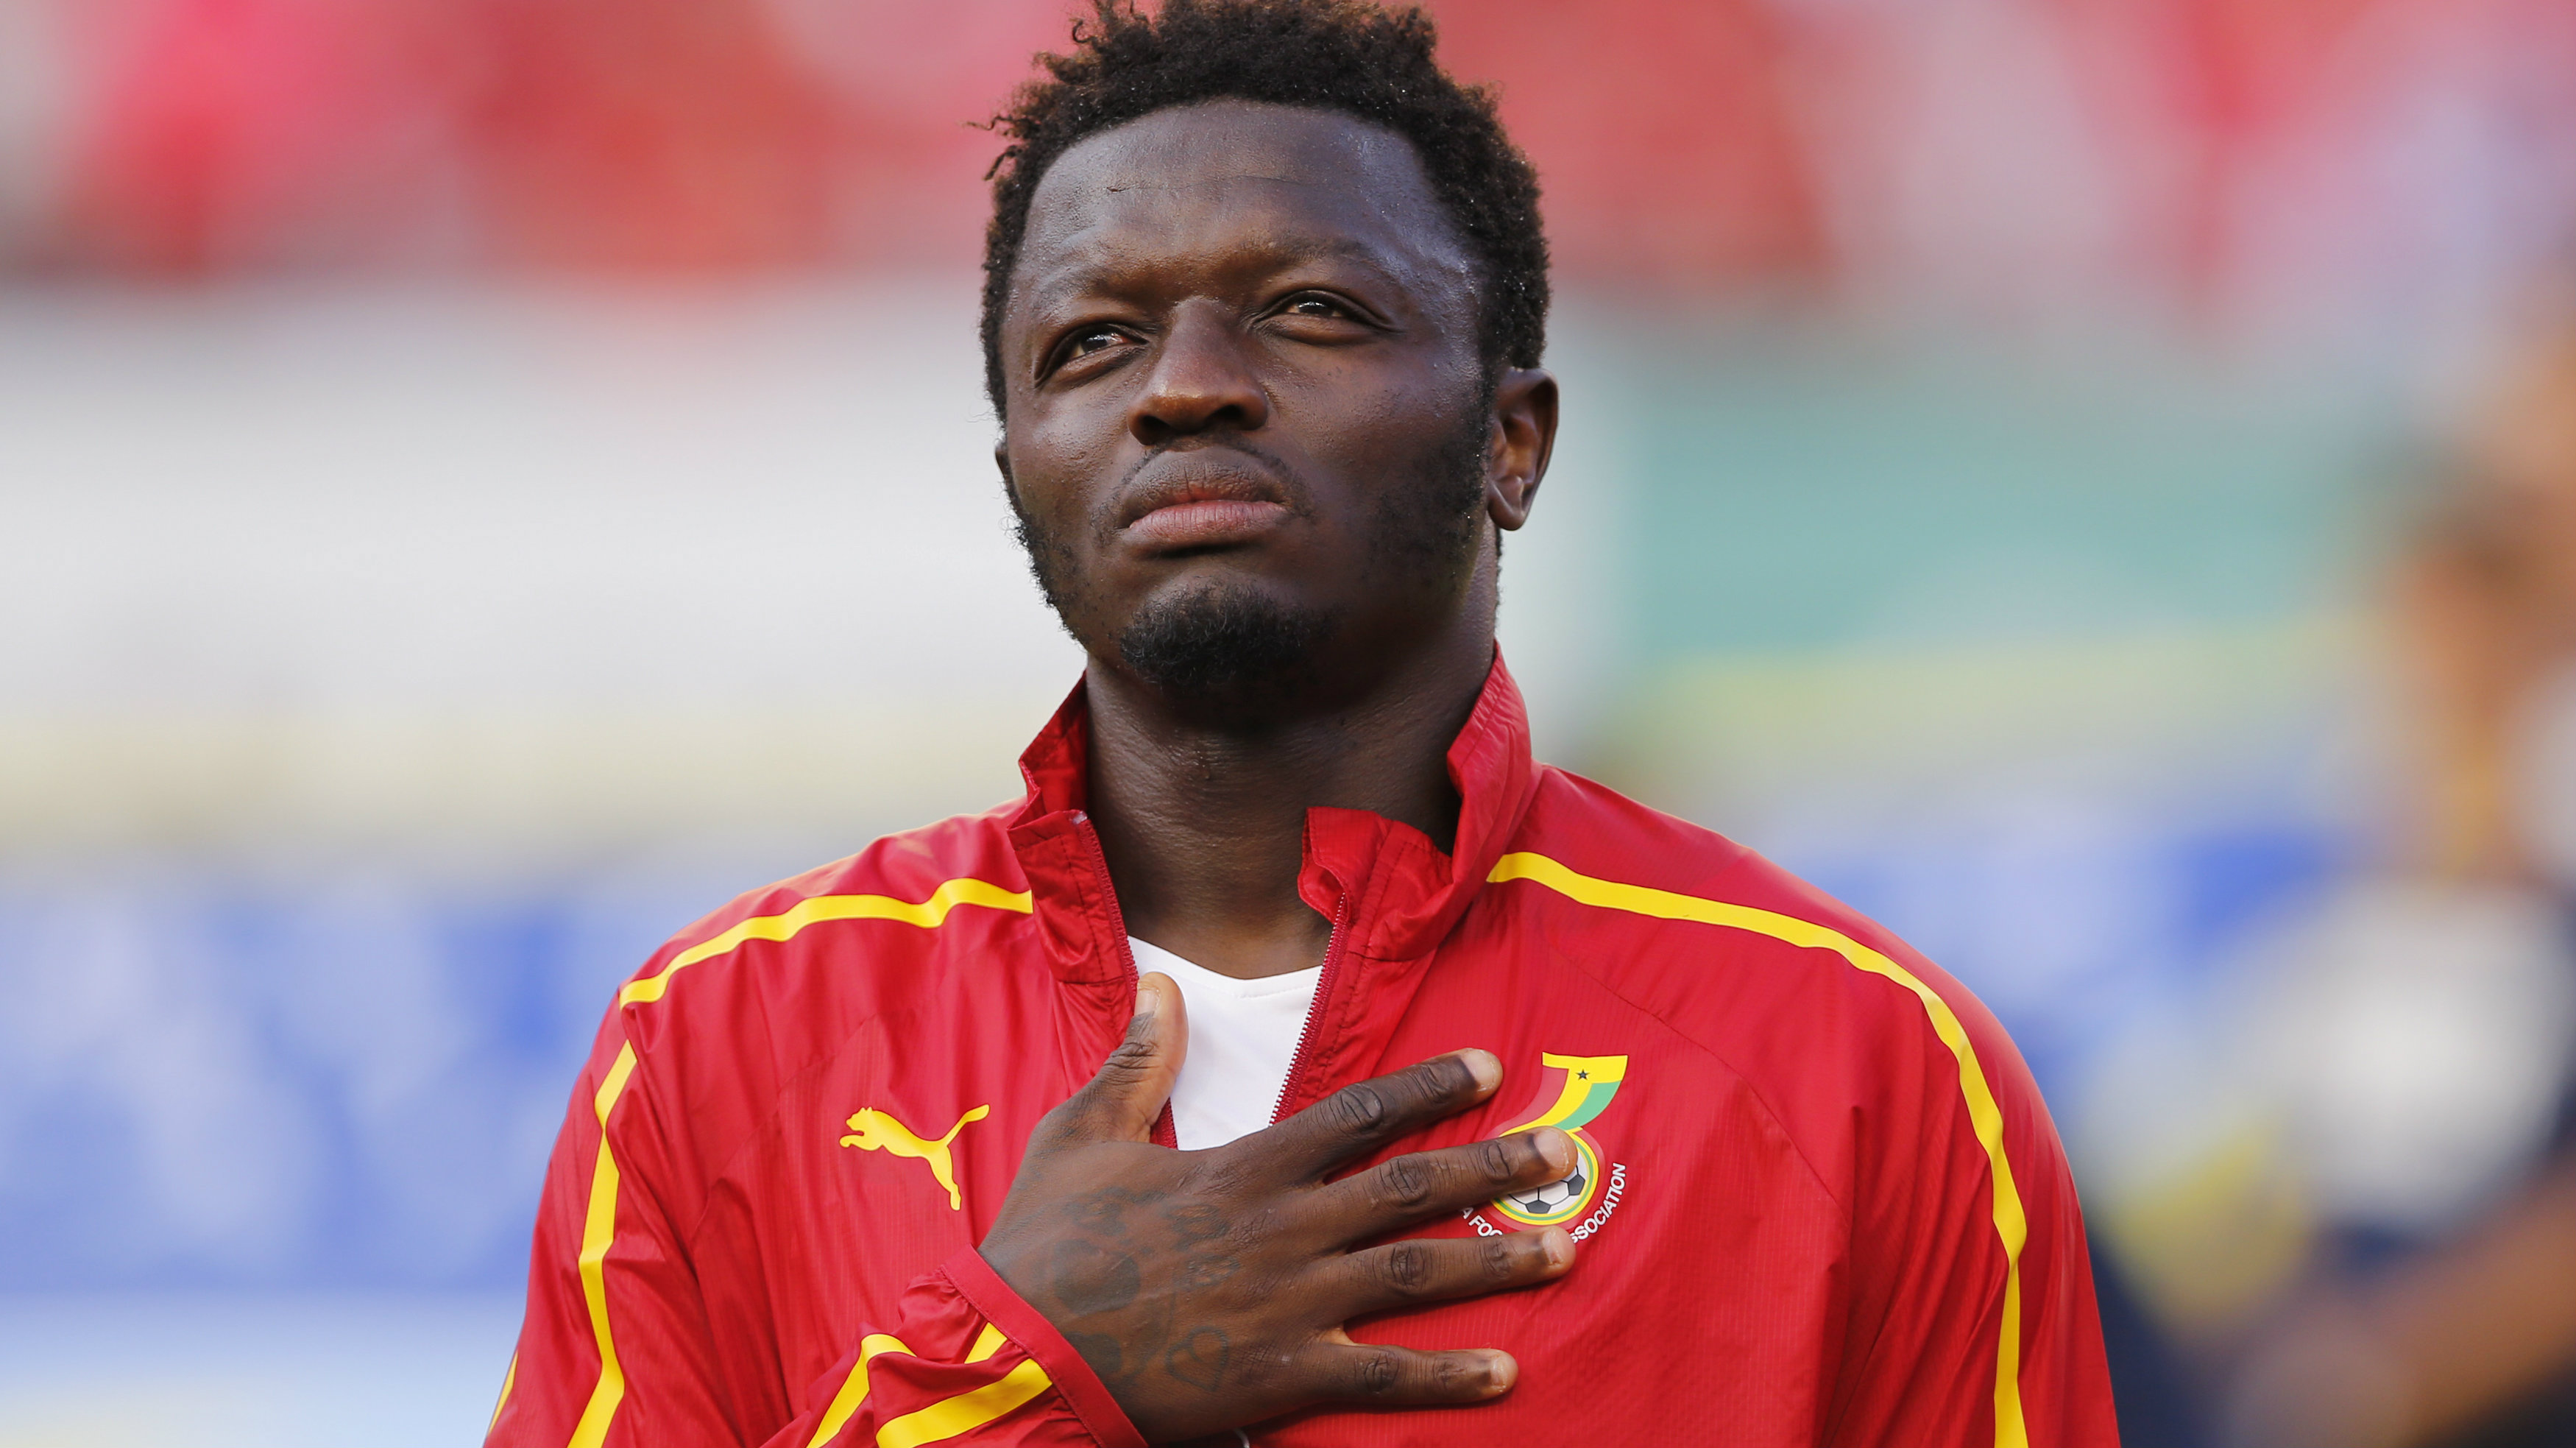 Ghana's Sulley Muntari listens to his country's national anthem before their international soccer friendly against South Korea at Sun Life stadium ahead of the 2014 World Cup in Miami, June 9, 2014